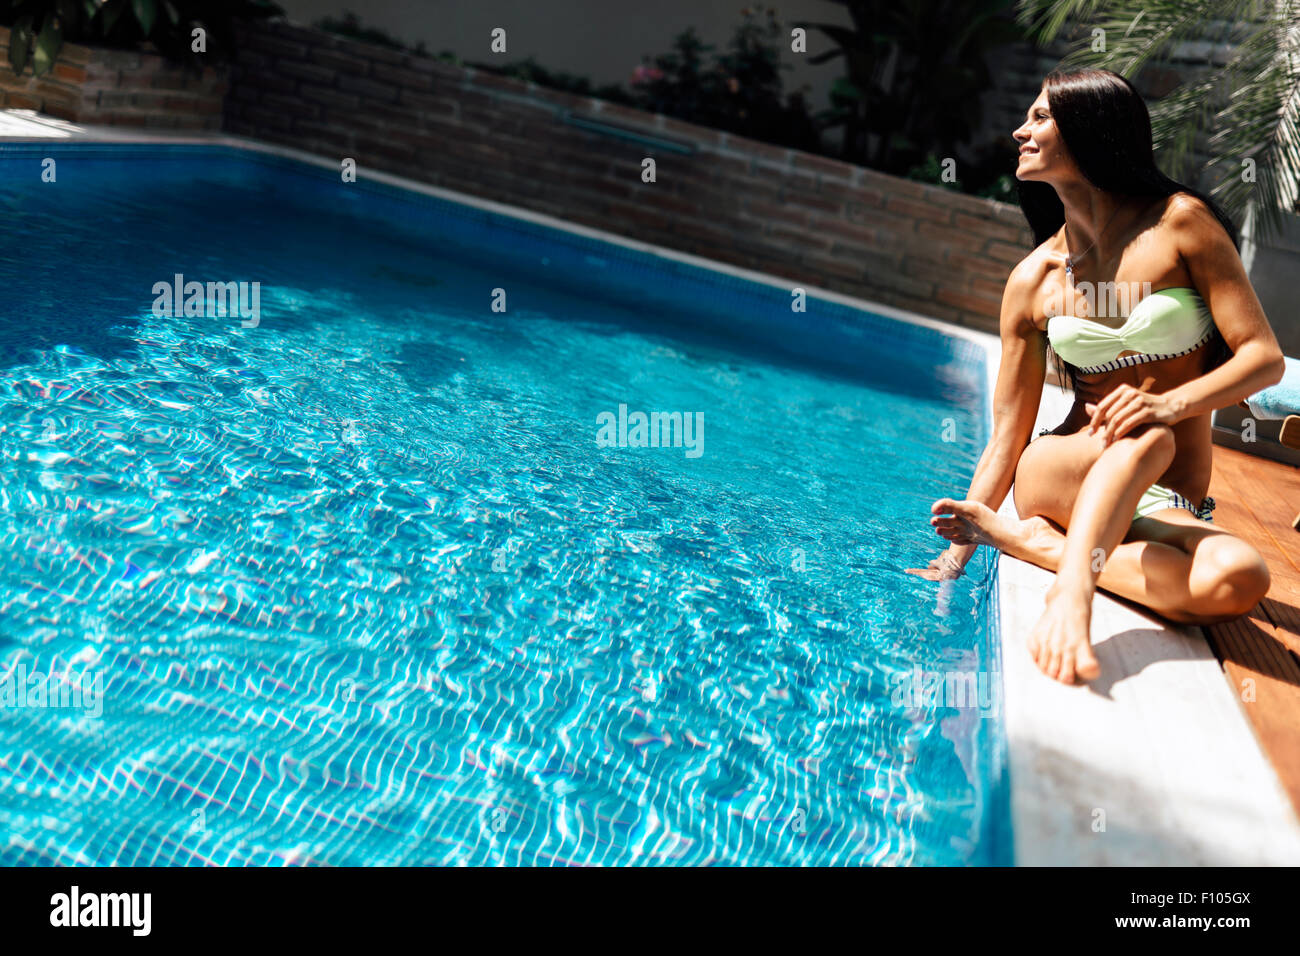 Young beautiful woman on the side of the pool playing with water displaying sensuality Stock Photo